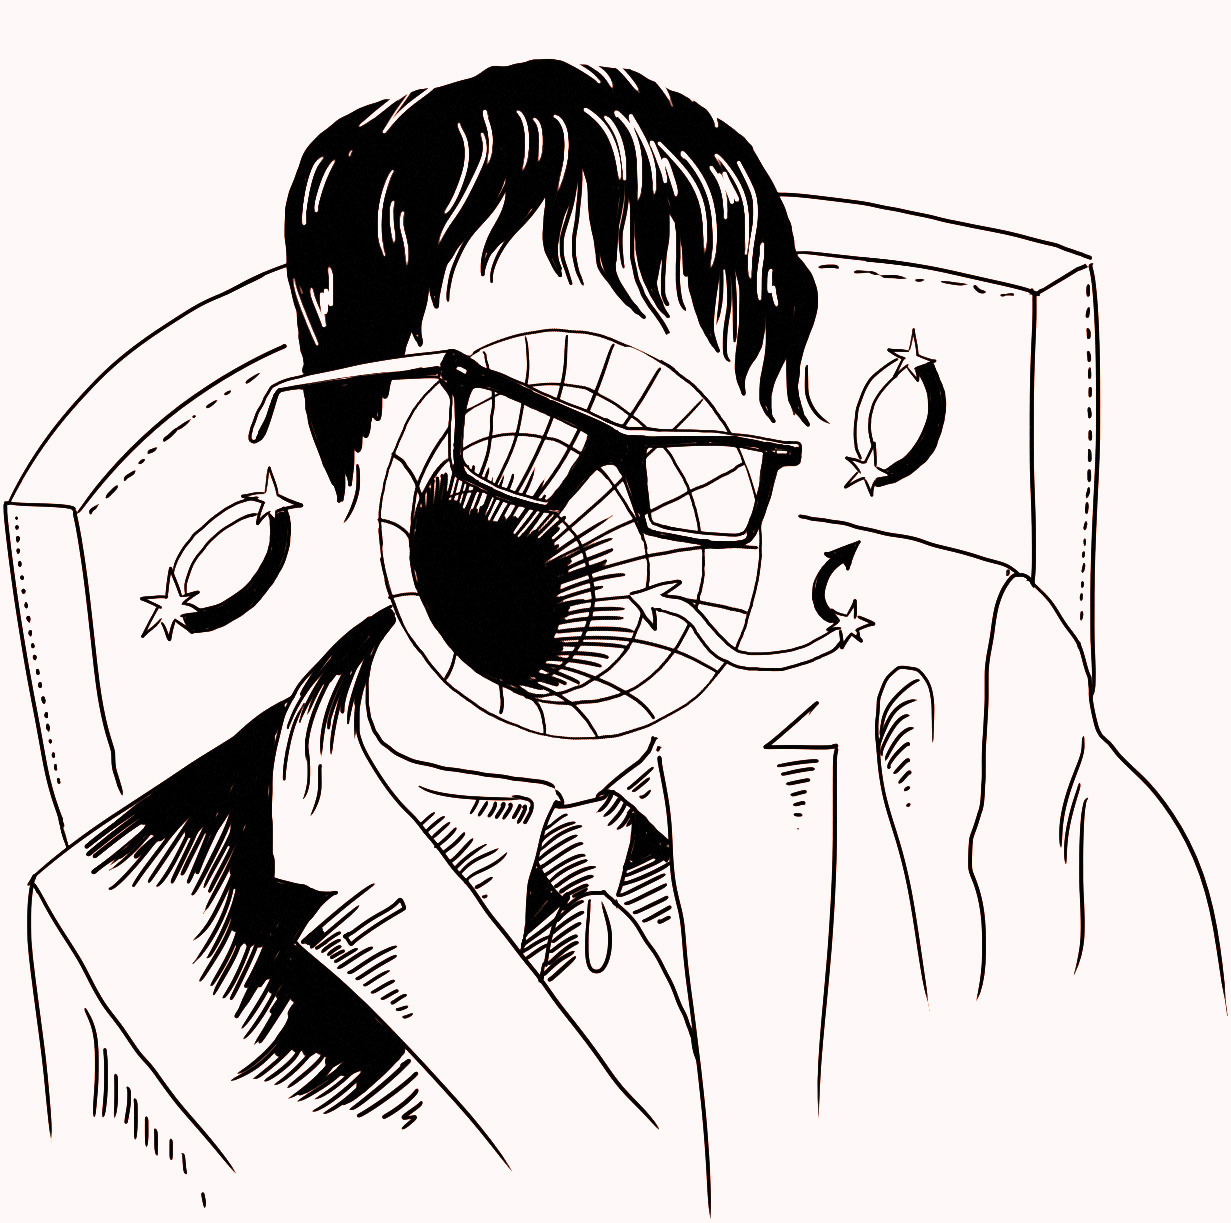 Illustration of Stephen Hawking with black hole over face